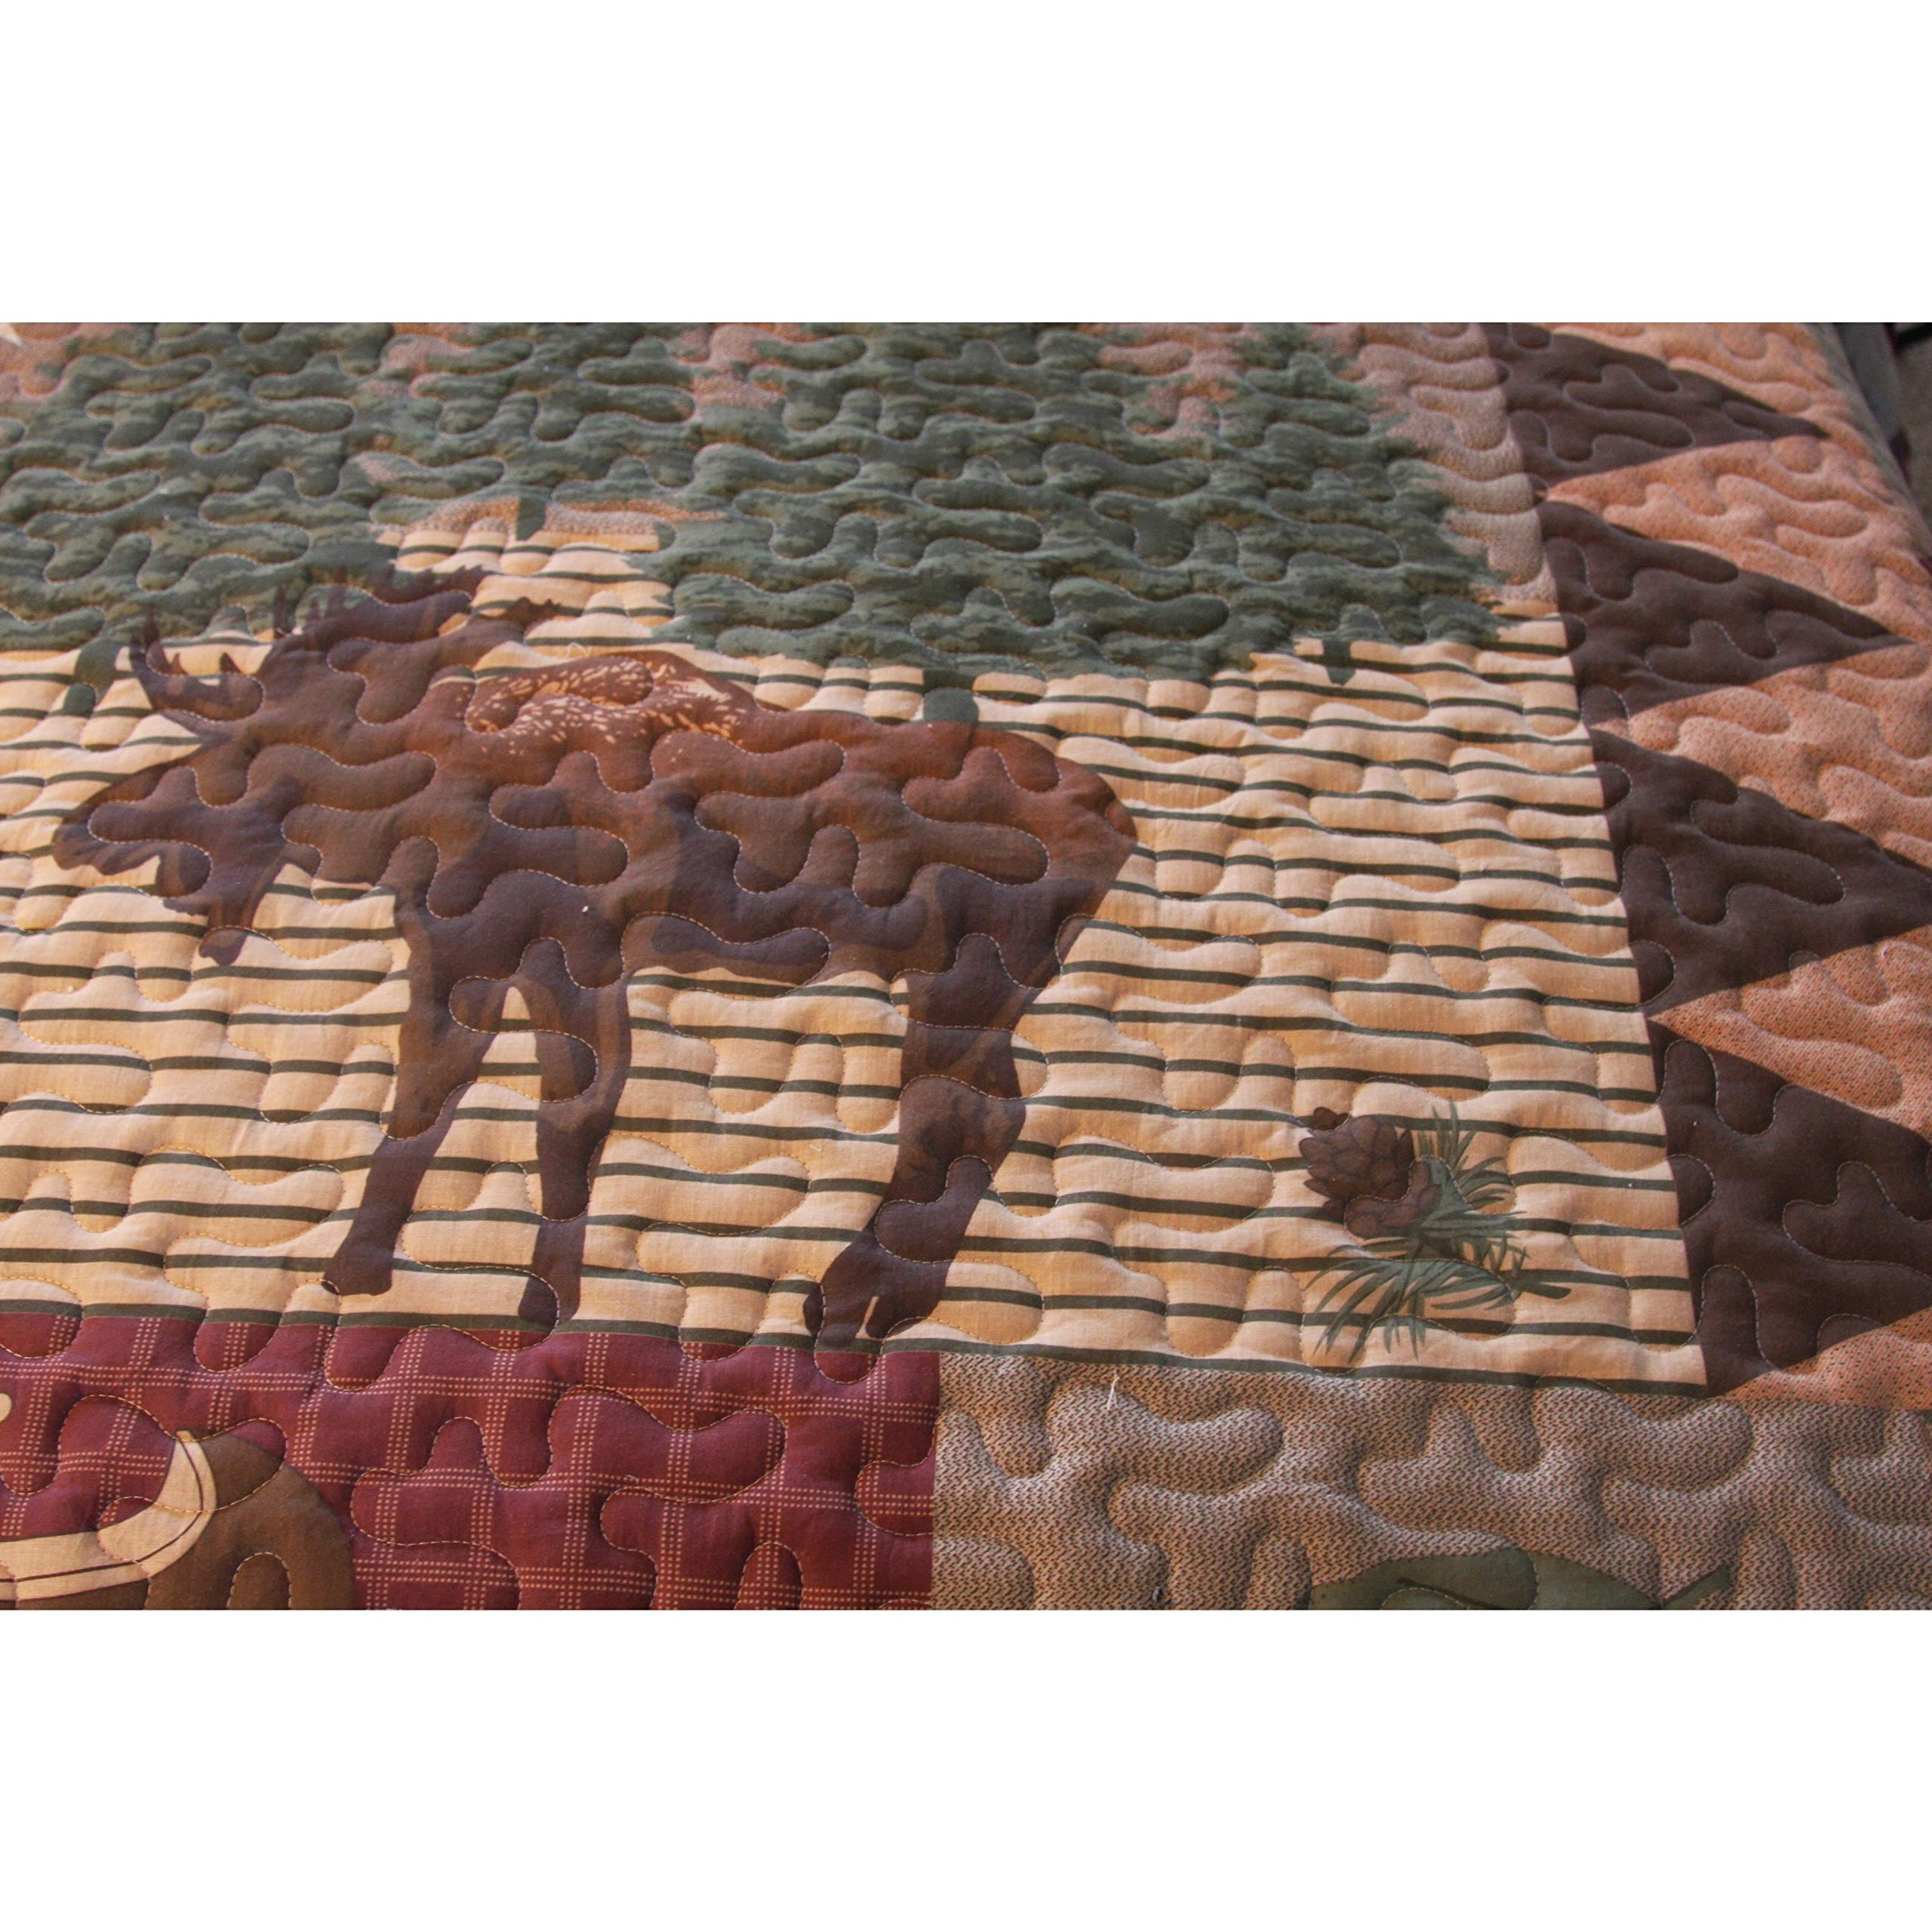 PH 3 Piece King Moose Quilt Set Wilderness Retreat Grey Chocolate Brown Light Plants Forest Green Leaf Animal Fish Red Burgundy Cabin Nature Black Loon Water Earth Tones Lodge Wildlife Bedding